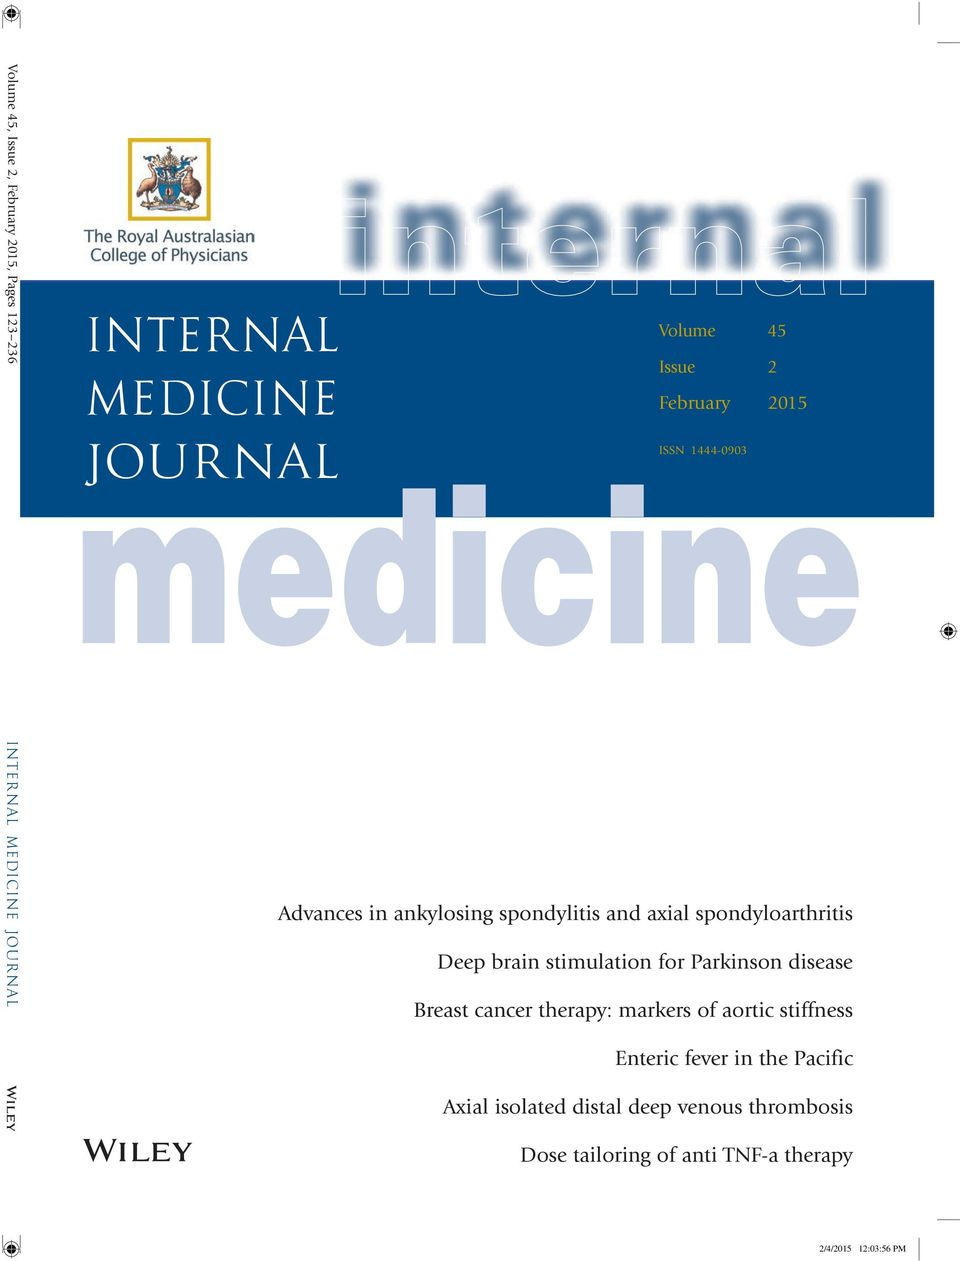 brain stimulation for Parkinson disease Breast cancer therapy: markers of aortic stiffness Enteric fever in